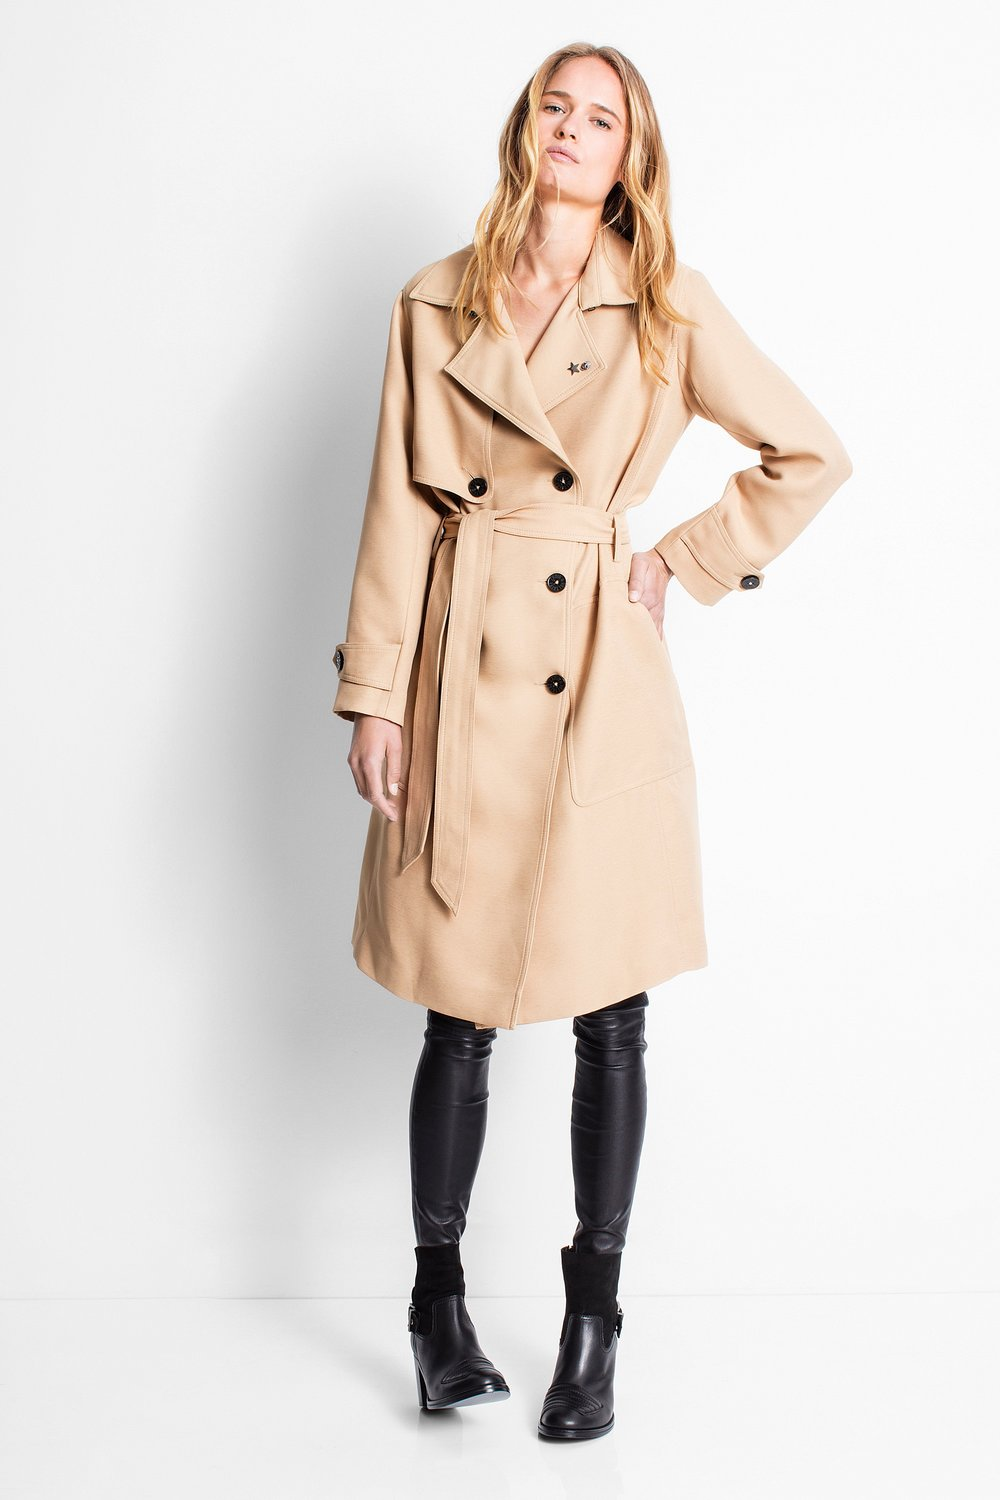 Zadig & Voltaire, Mai Deluxe Trench, £222 (half price)